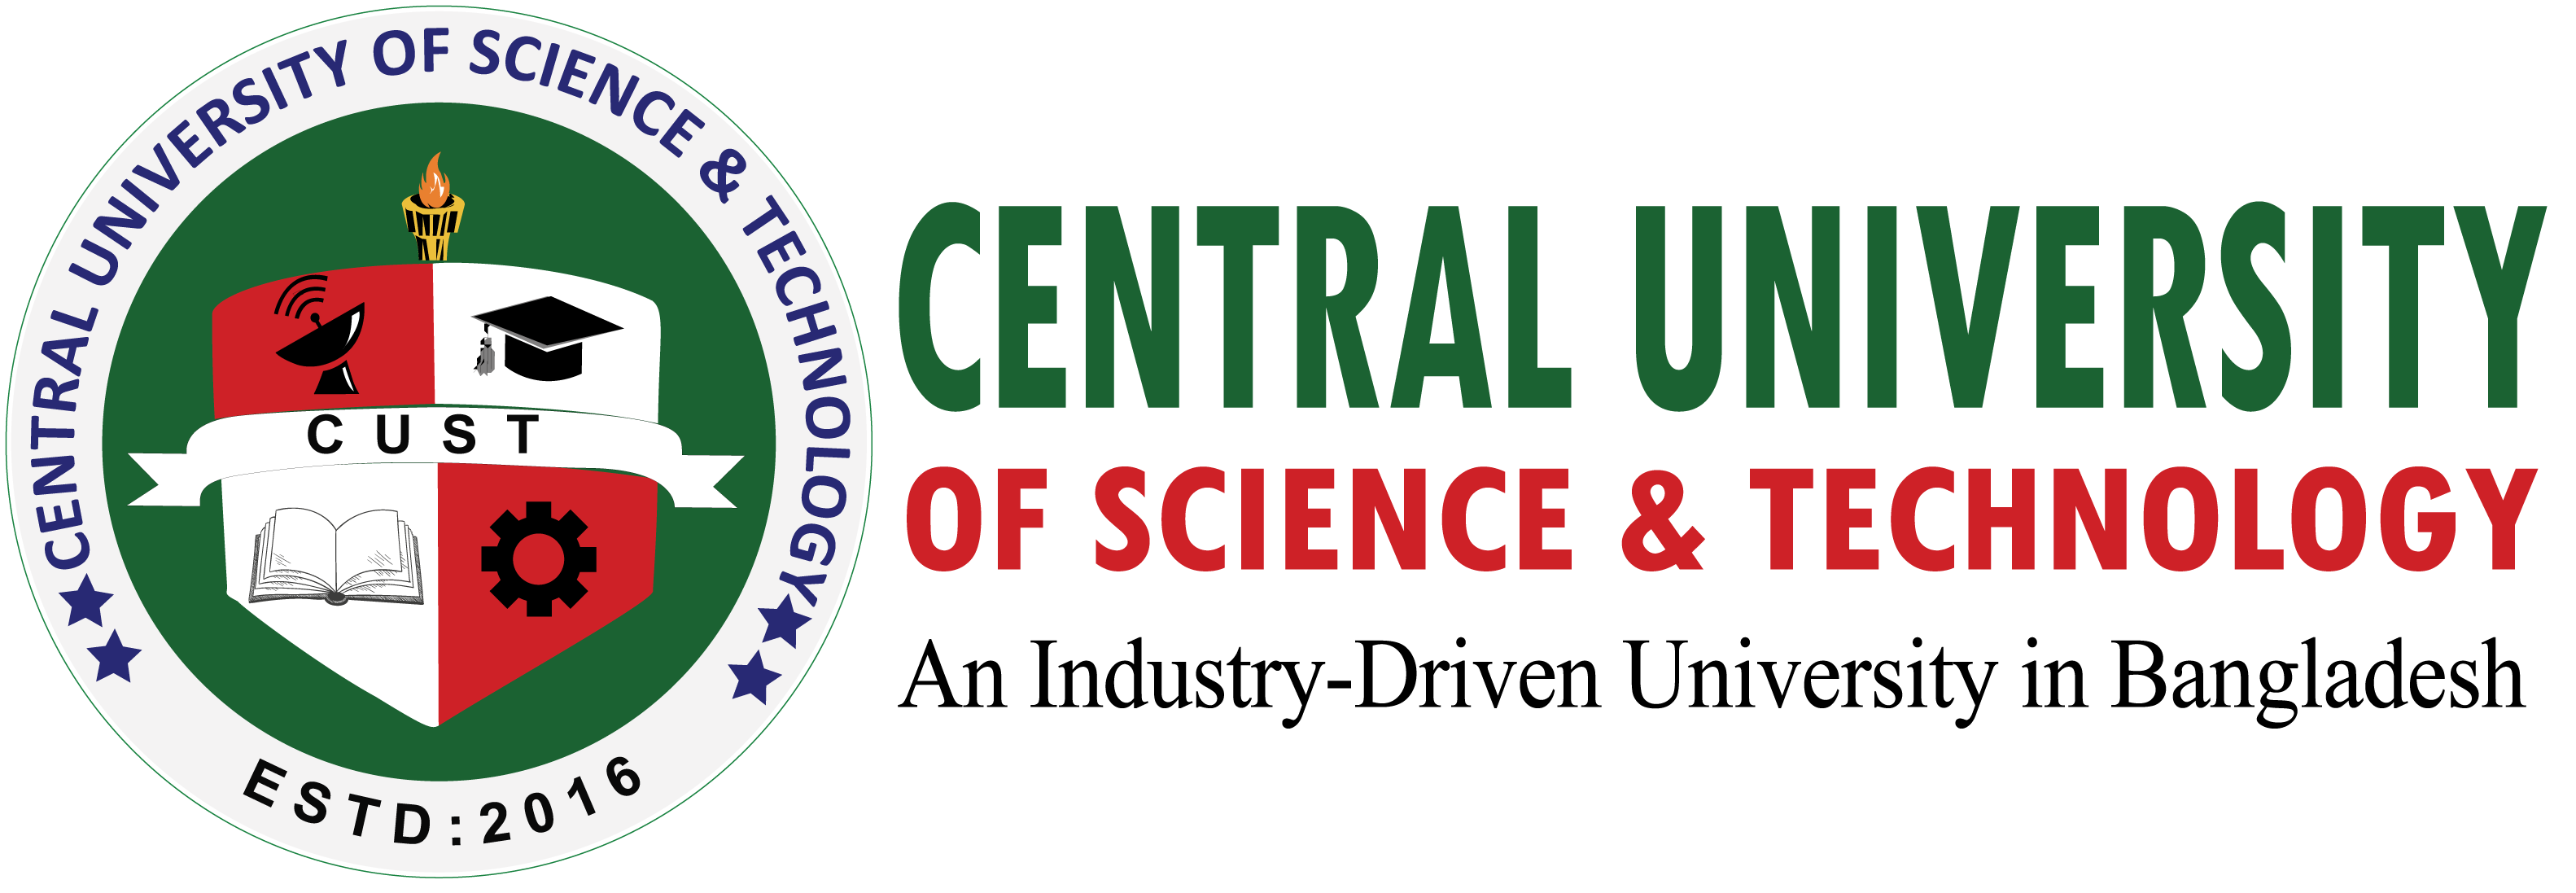 School of Business & Industrial Development - Central University of Science and Technology